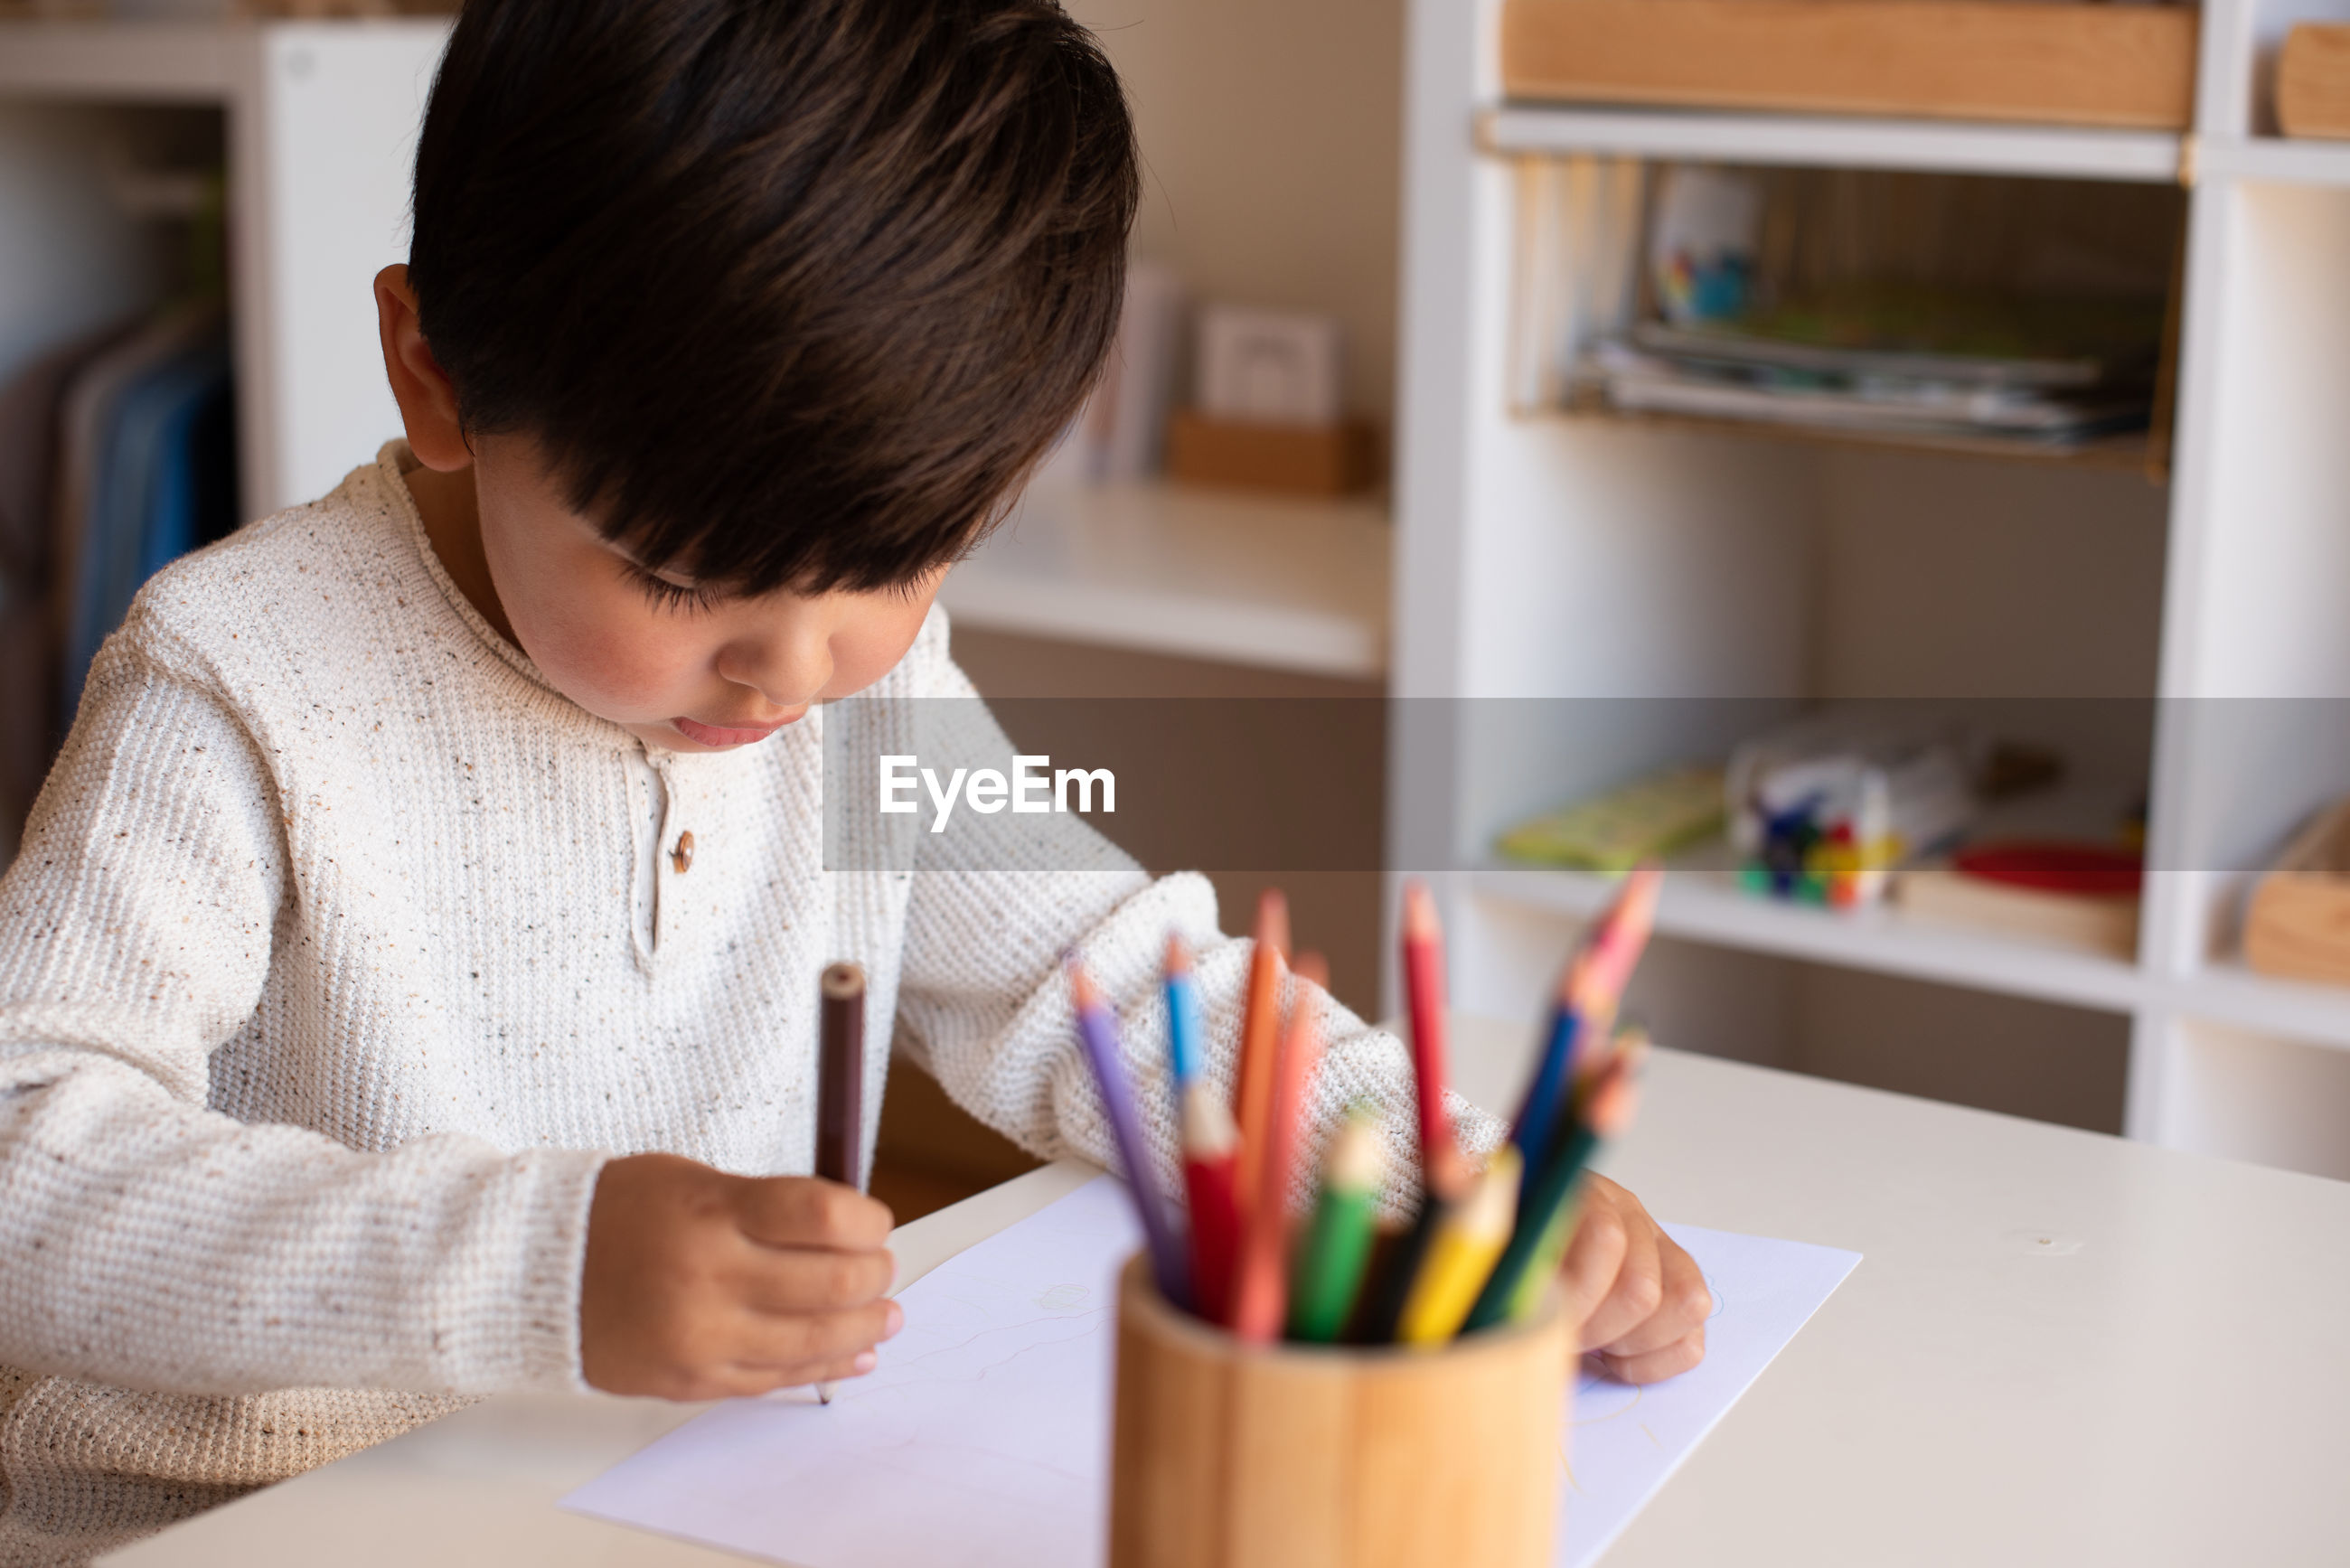 Cute boy drawing on paper at home